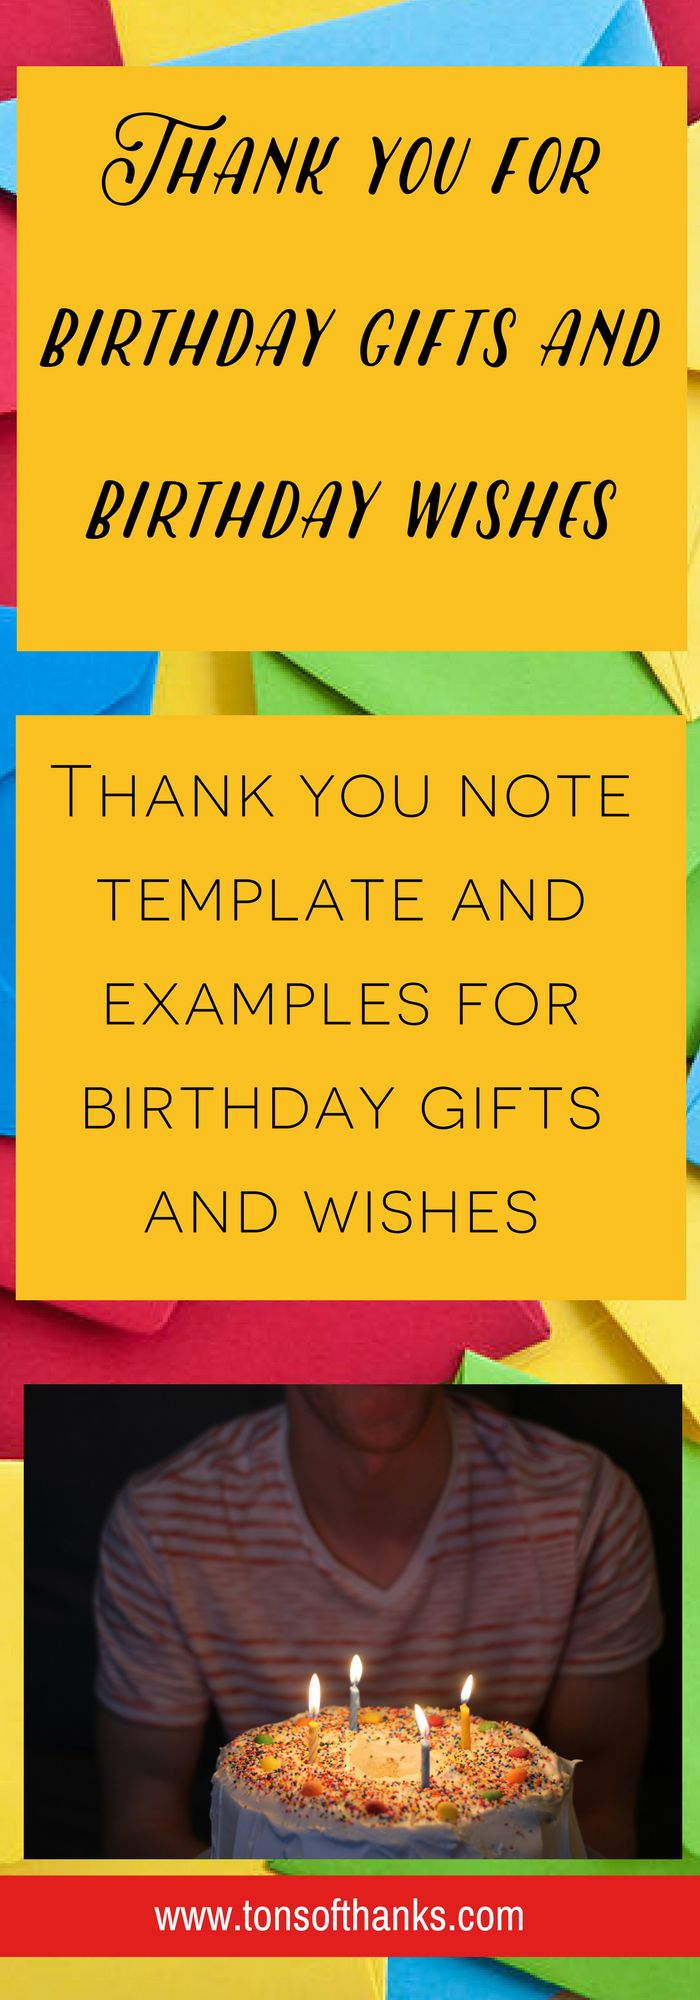 how to write thank you notes for wedding gift cards%0A Thank you for the birthday wishes  Thank you note examples for thanking  someone for the birthday wishes or birthday gifts